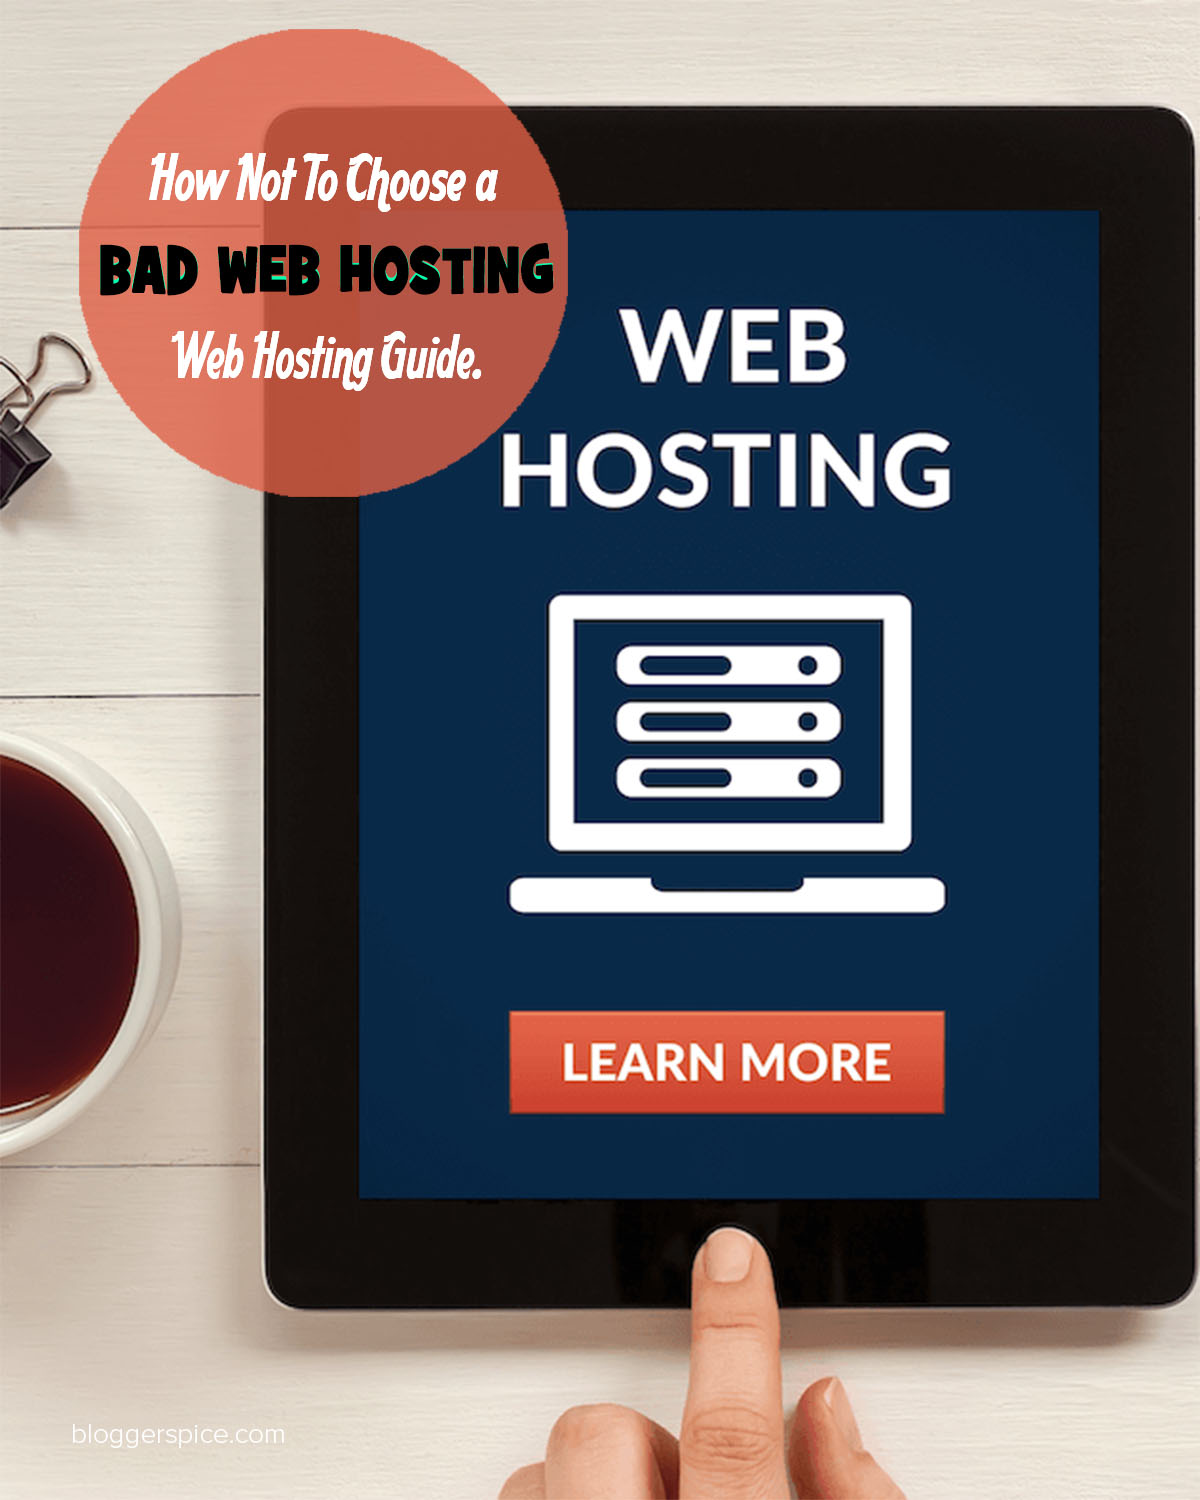 10 things to consider before choosing a Web hosting provider